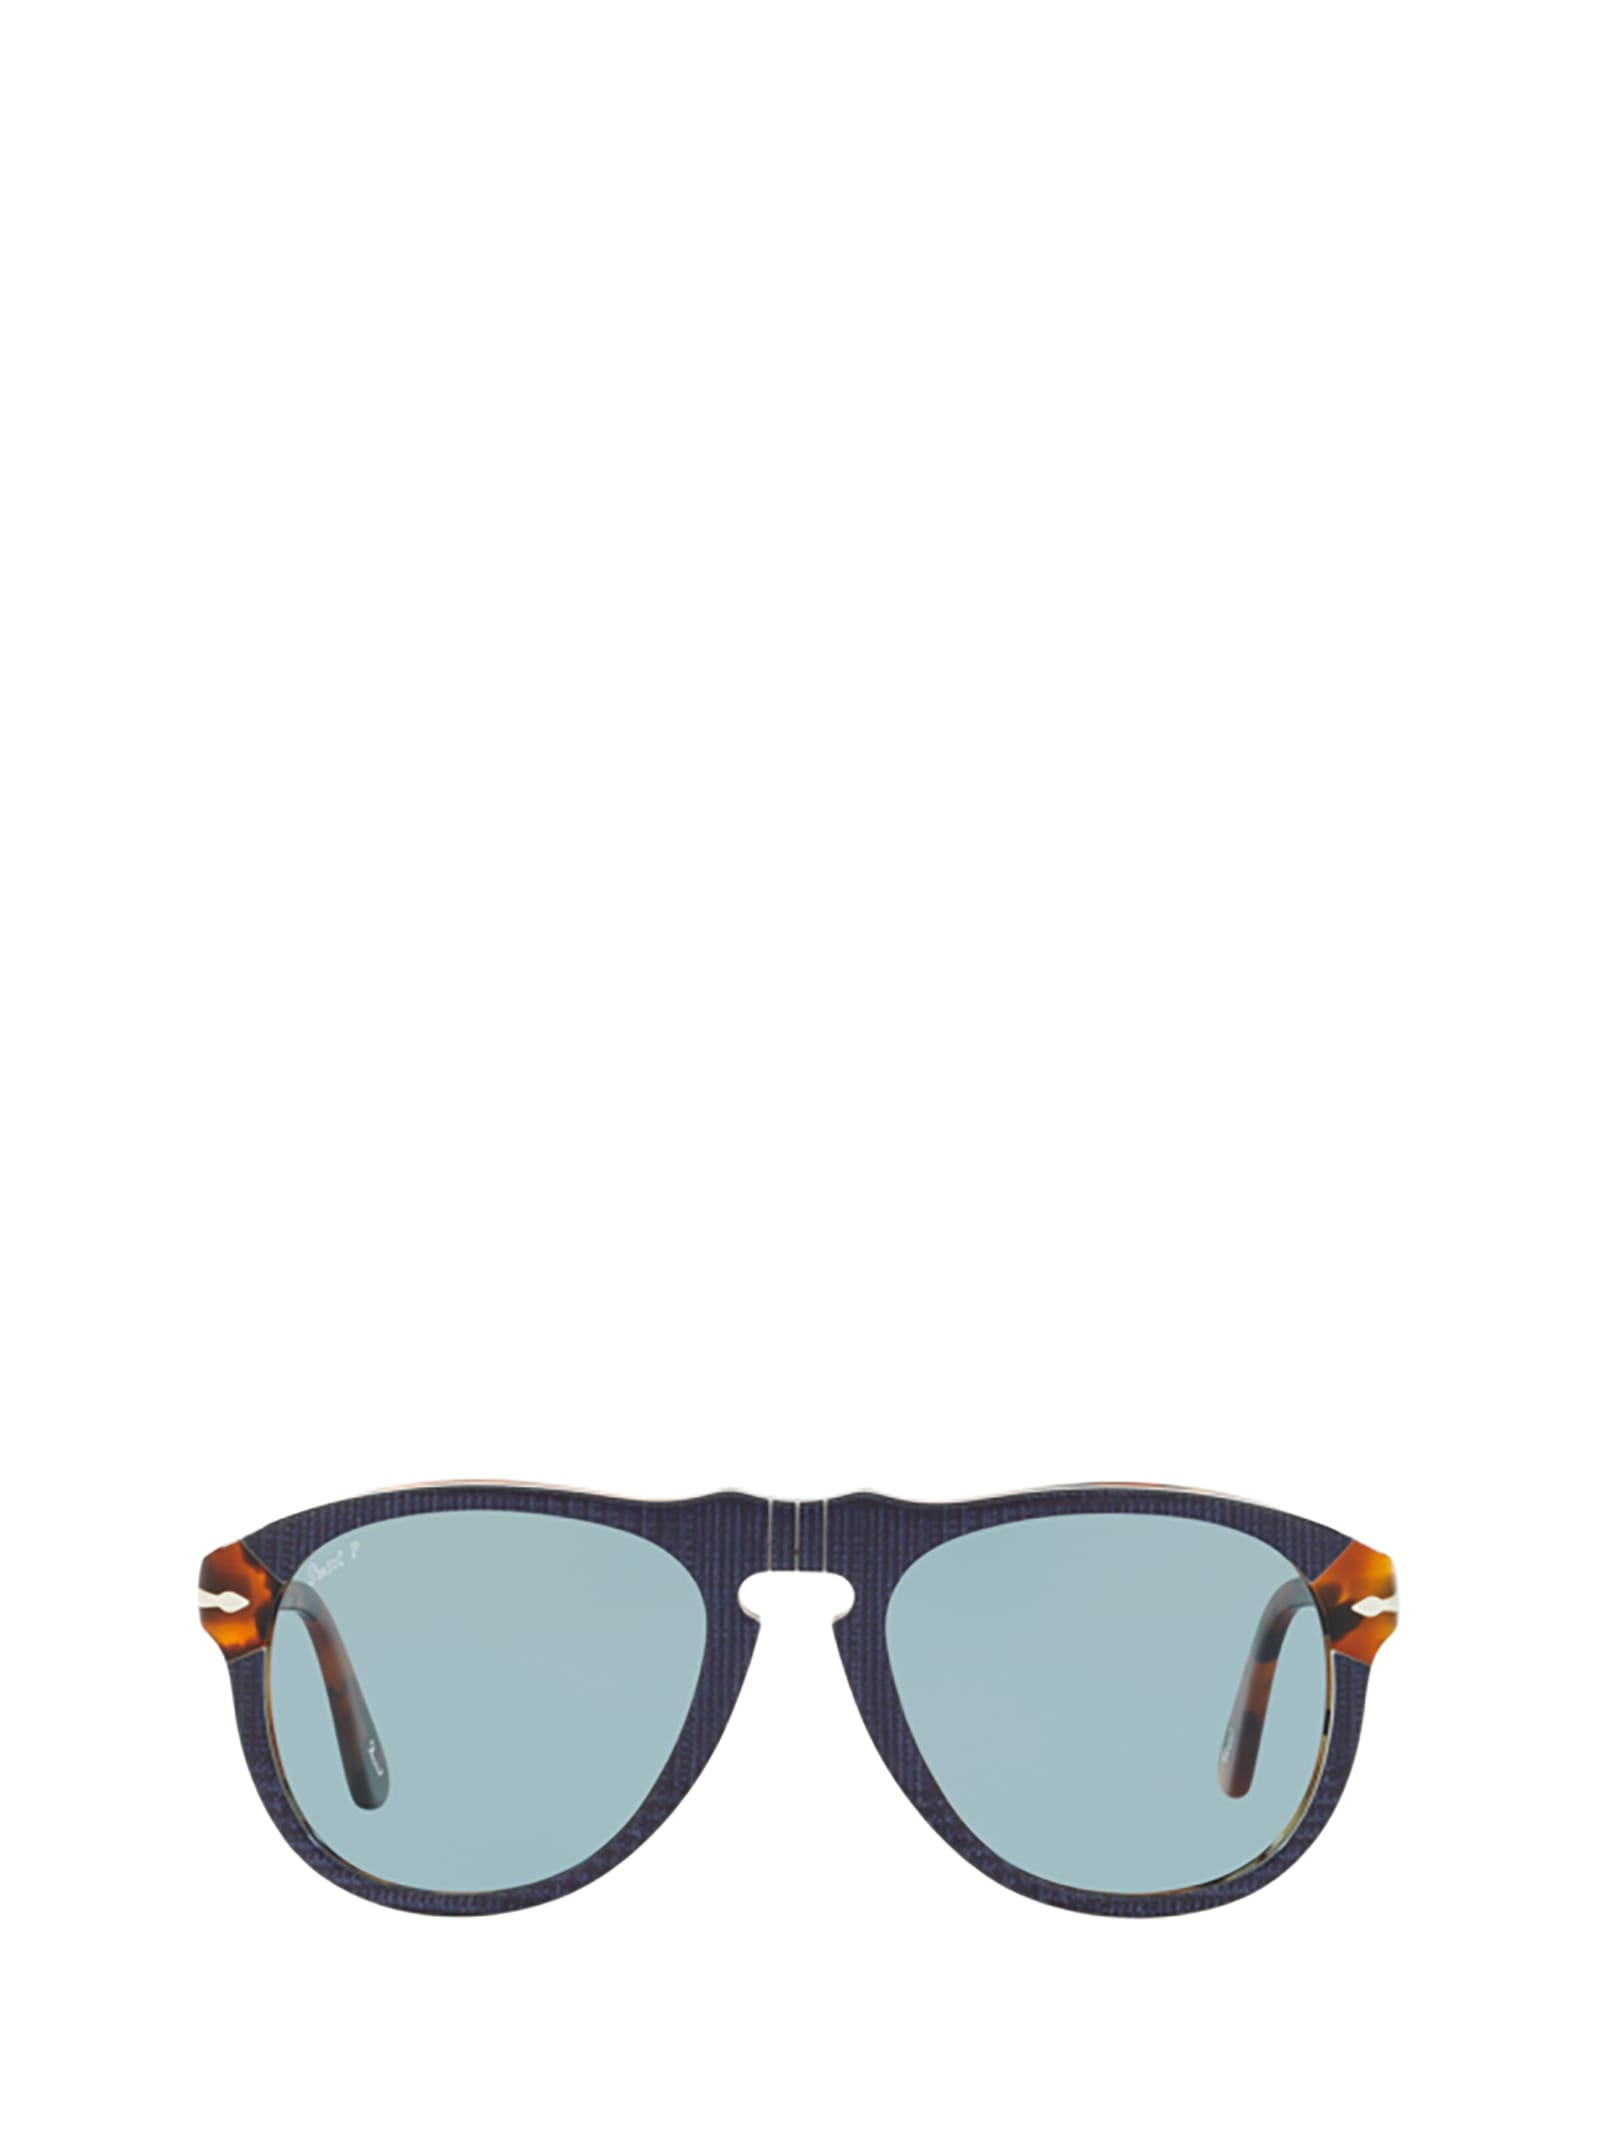 Persol Persol Po0649 Blue Prince Of Wales & Havana Sunglasses